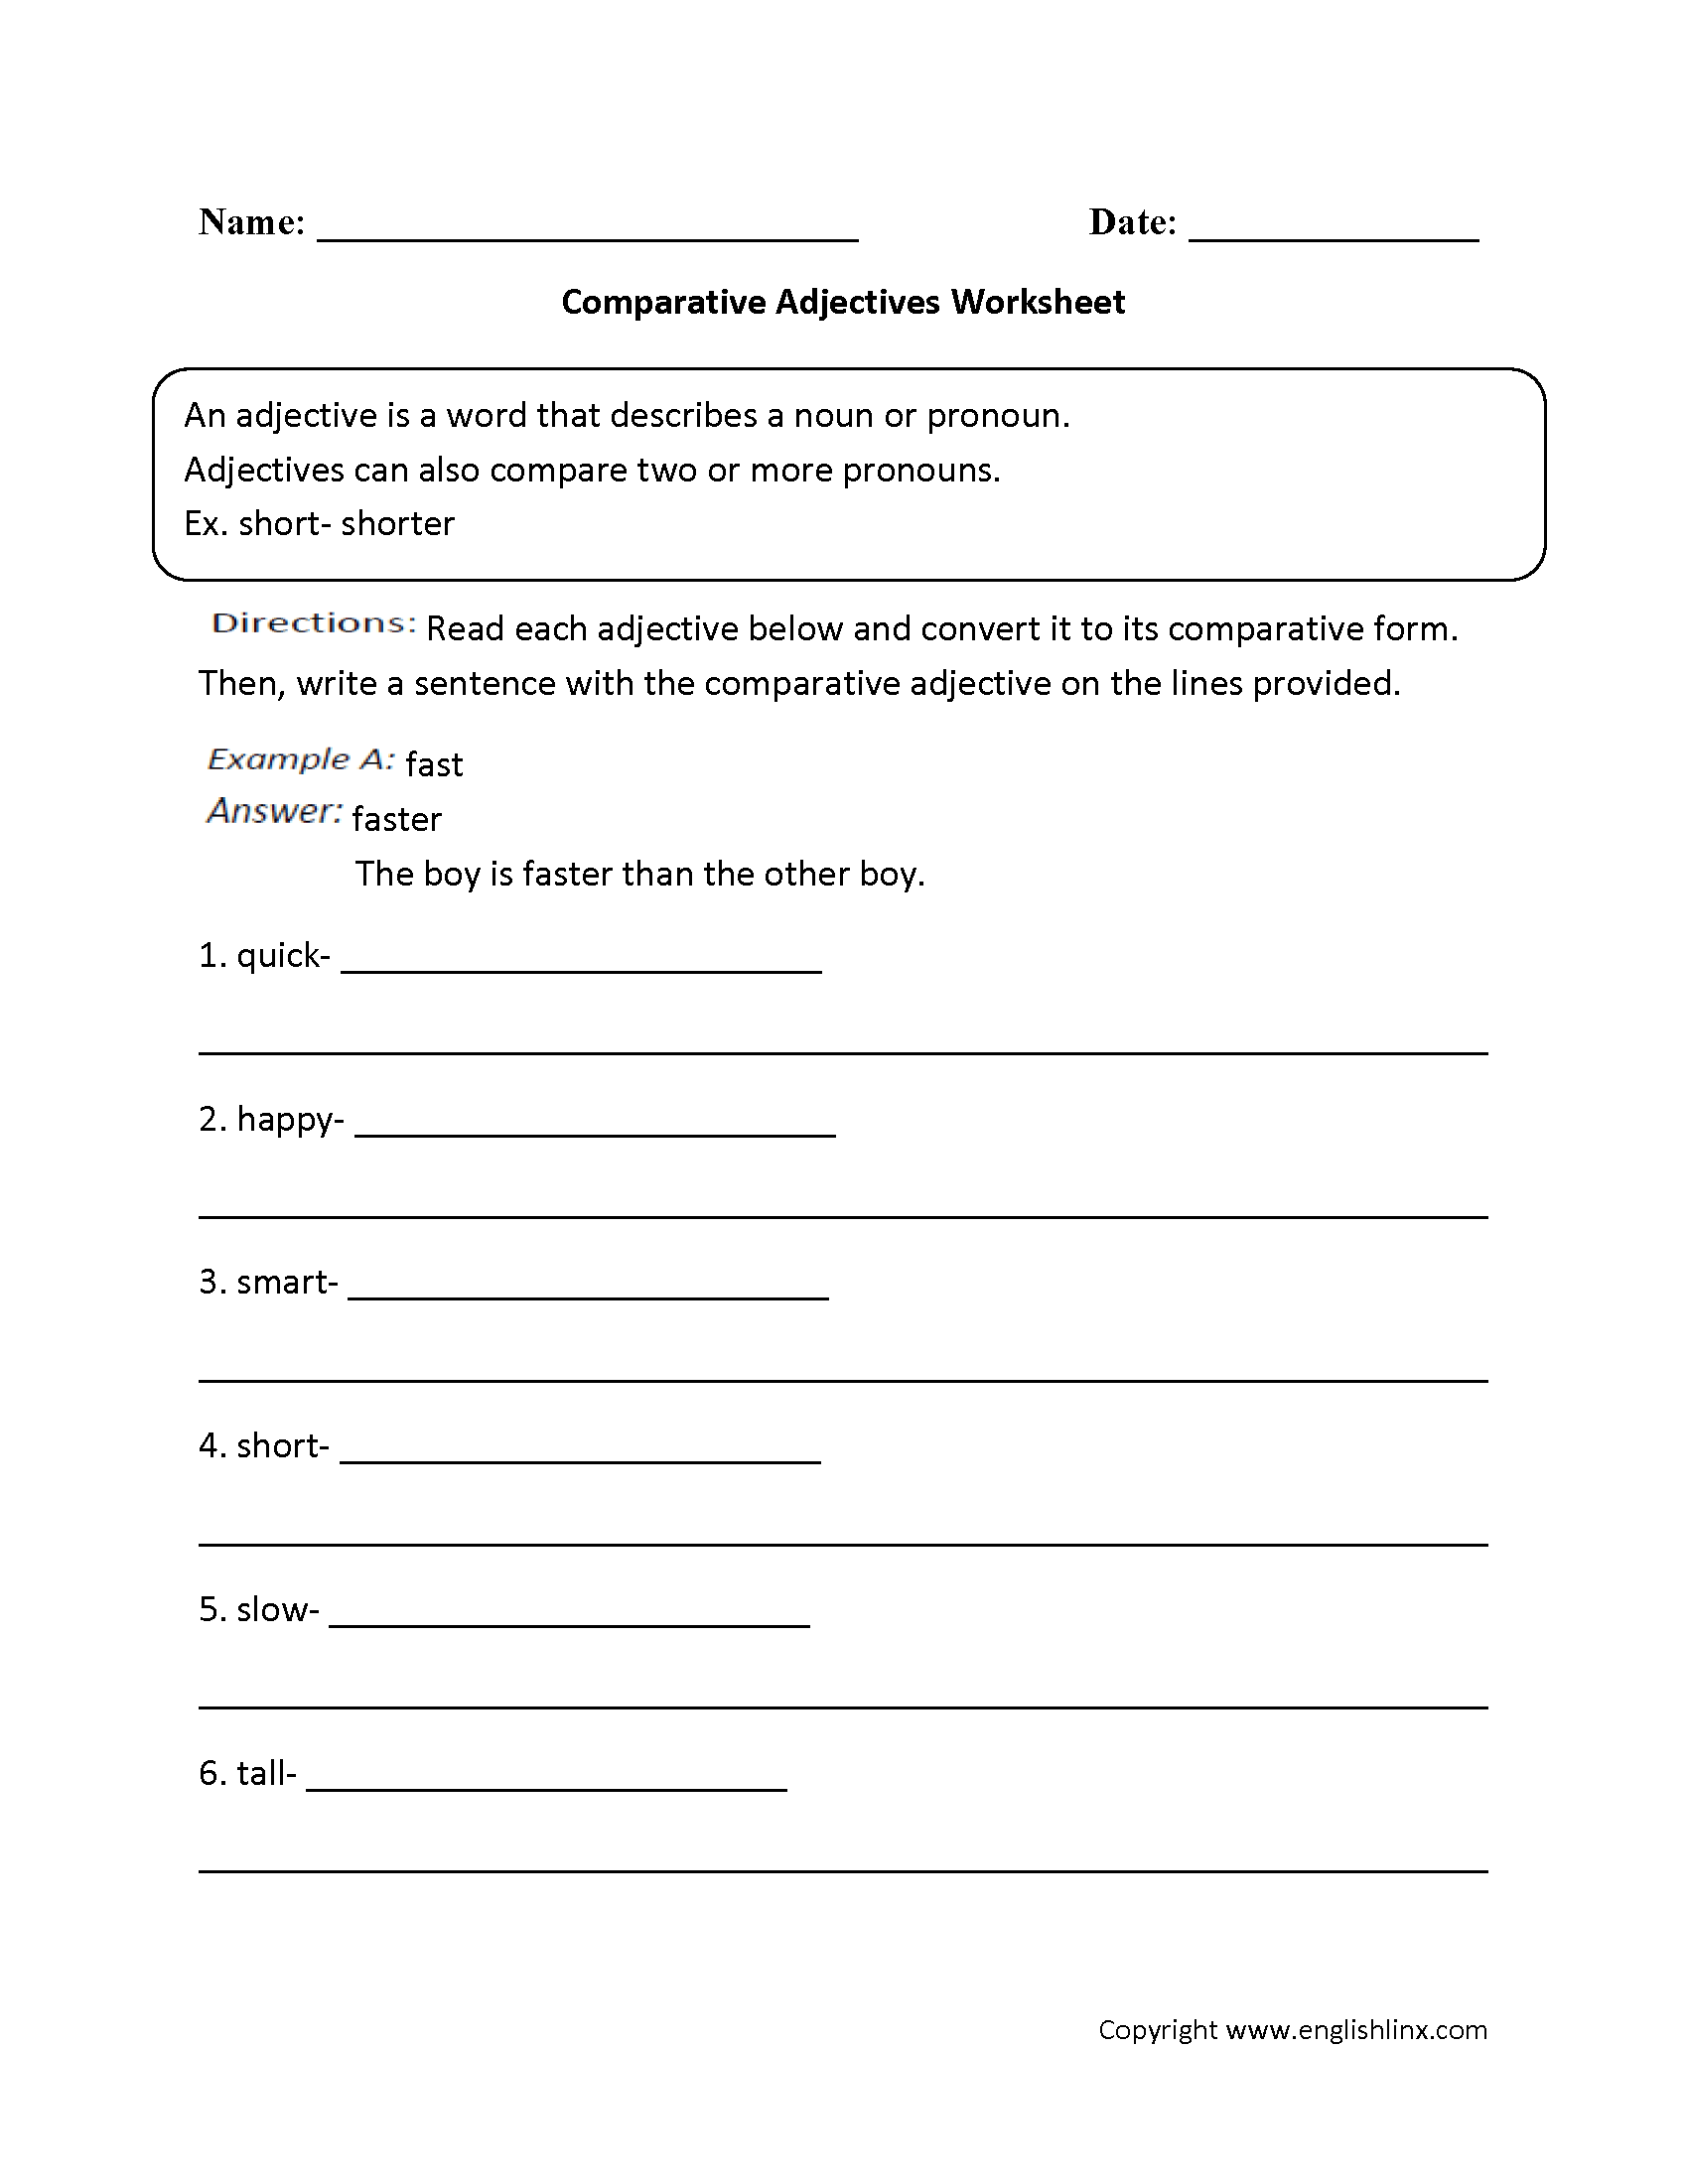 Worksheets Adjective Worksheets 4th Grade parts speech worksheets adjective comparative adjectives worksheets